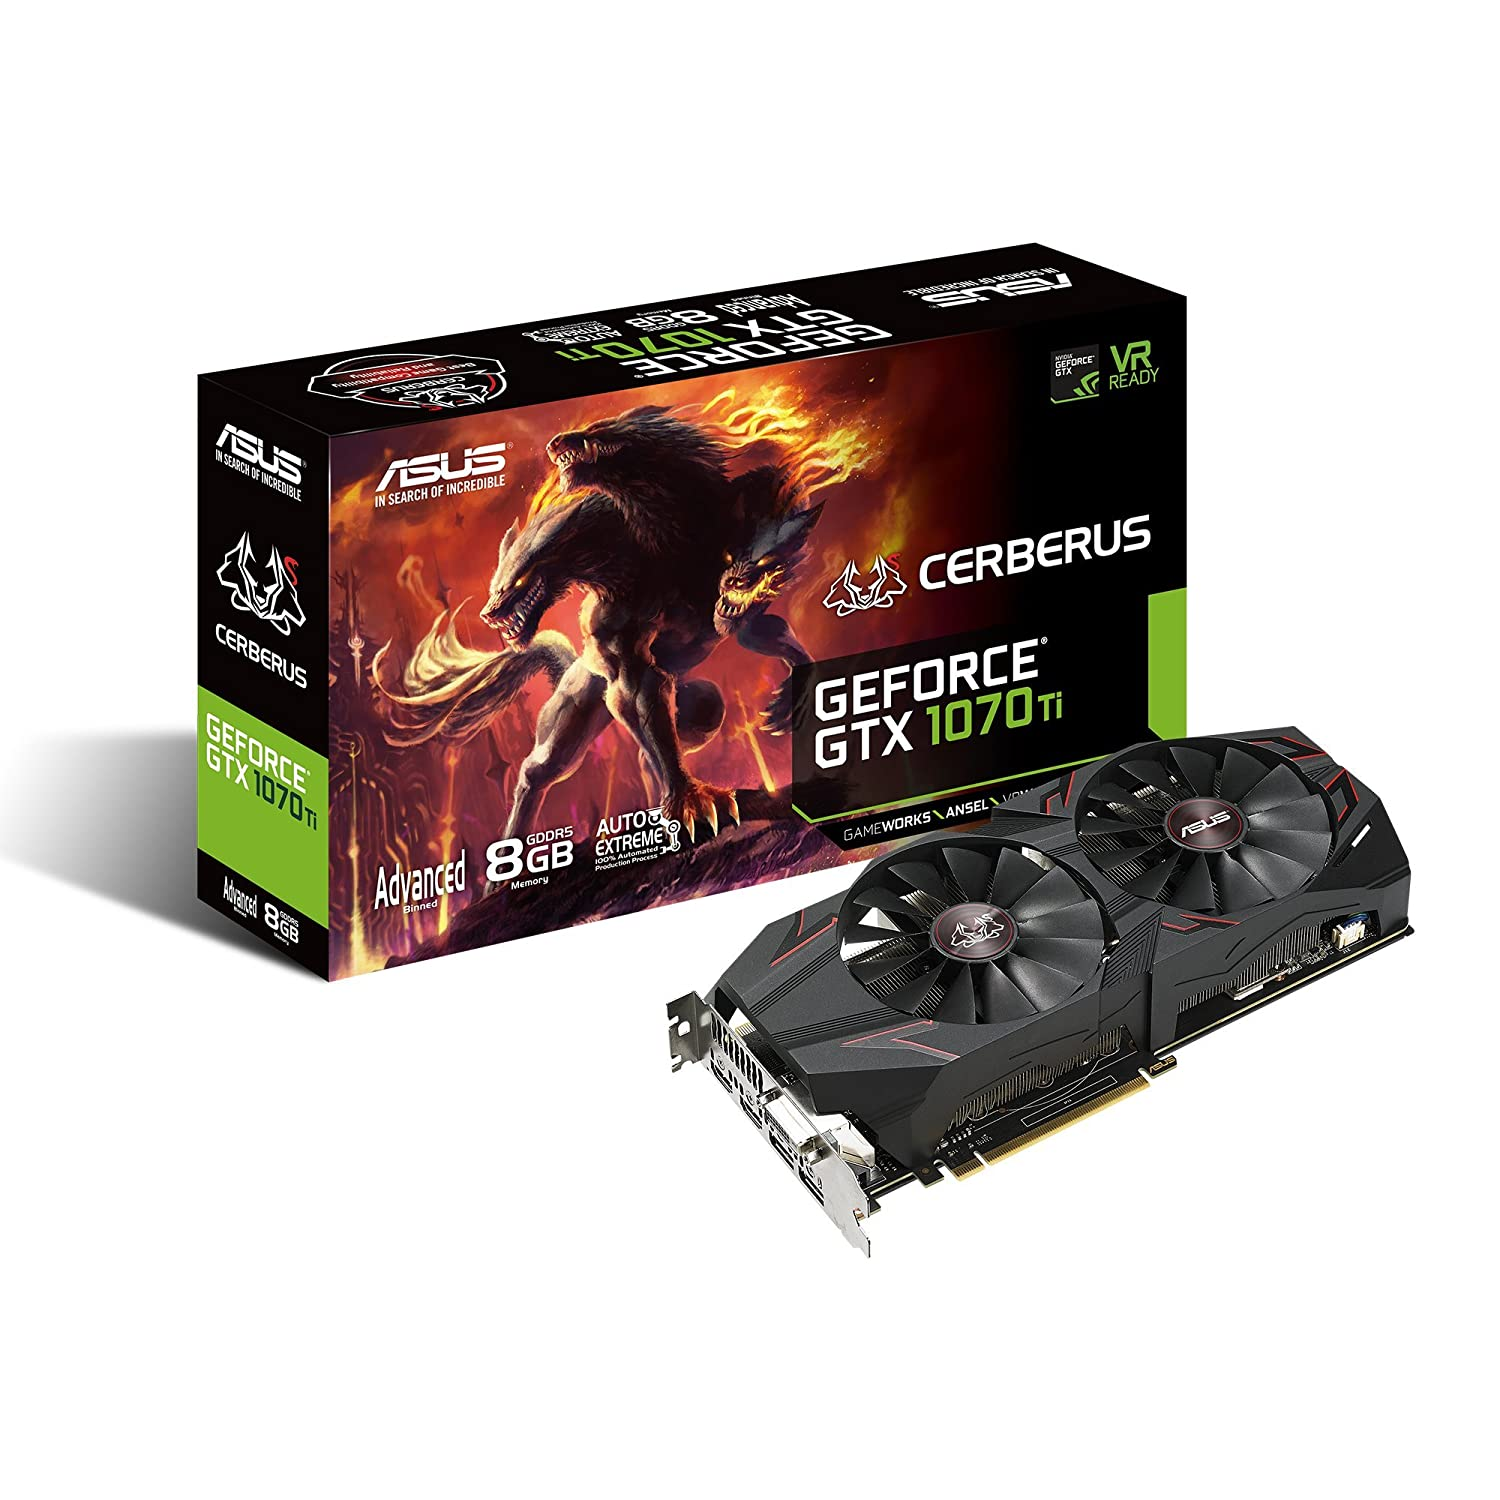 ASUS Cerberus GeForce GTX 1070 Ti 8GB GDDR5 Advanced Edition VR Ready DP HDMI DVI Gaming Graphics Card (CERBERUS-GTX1070TI-A8G)